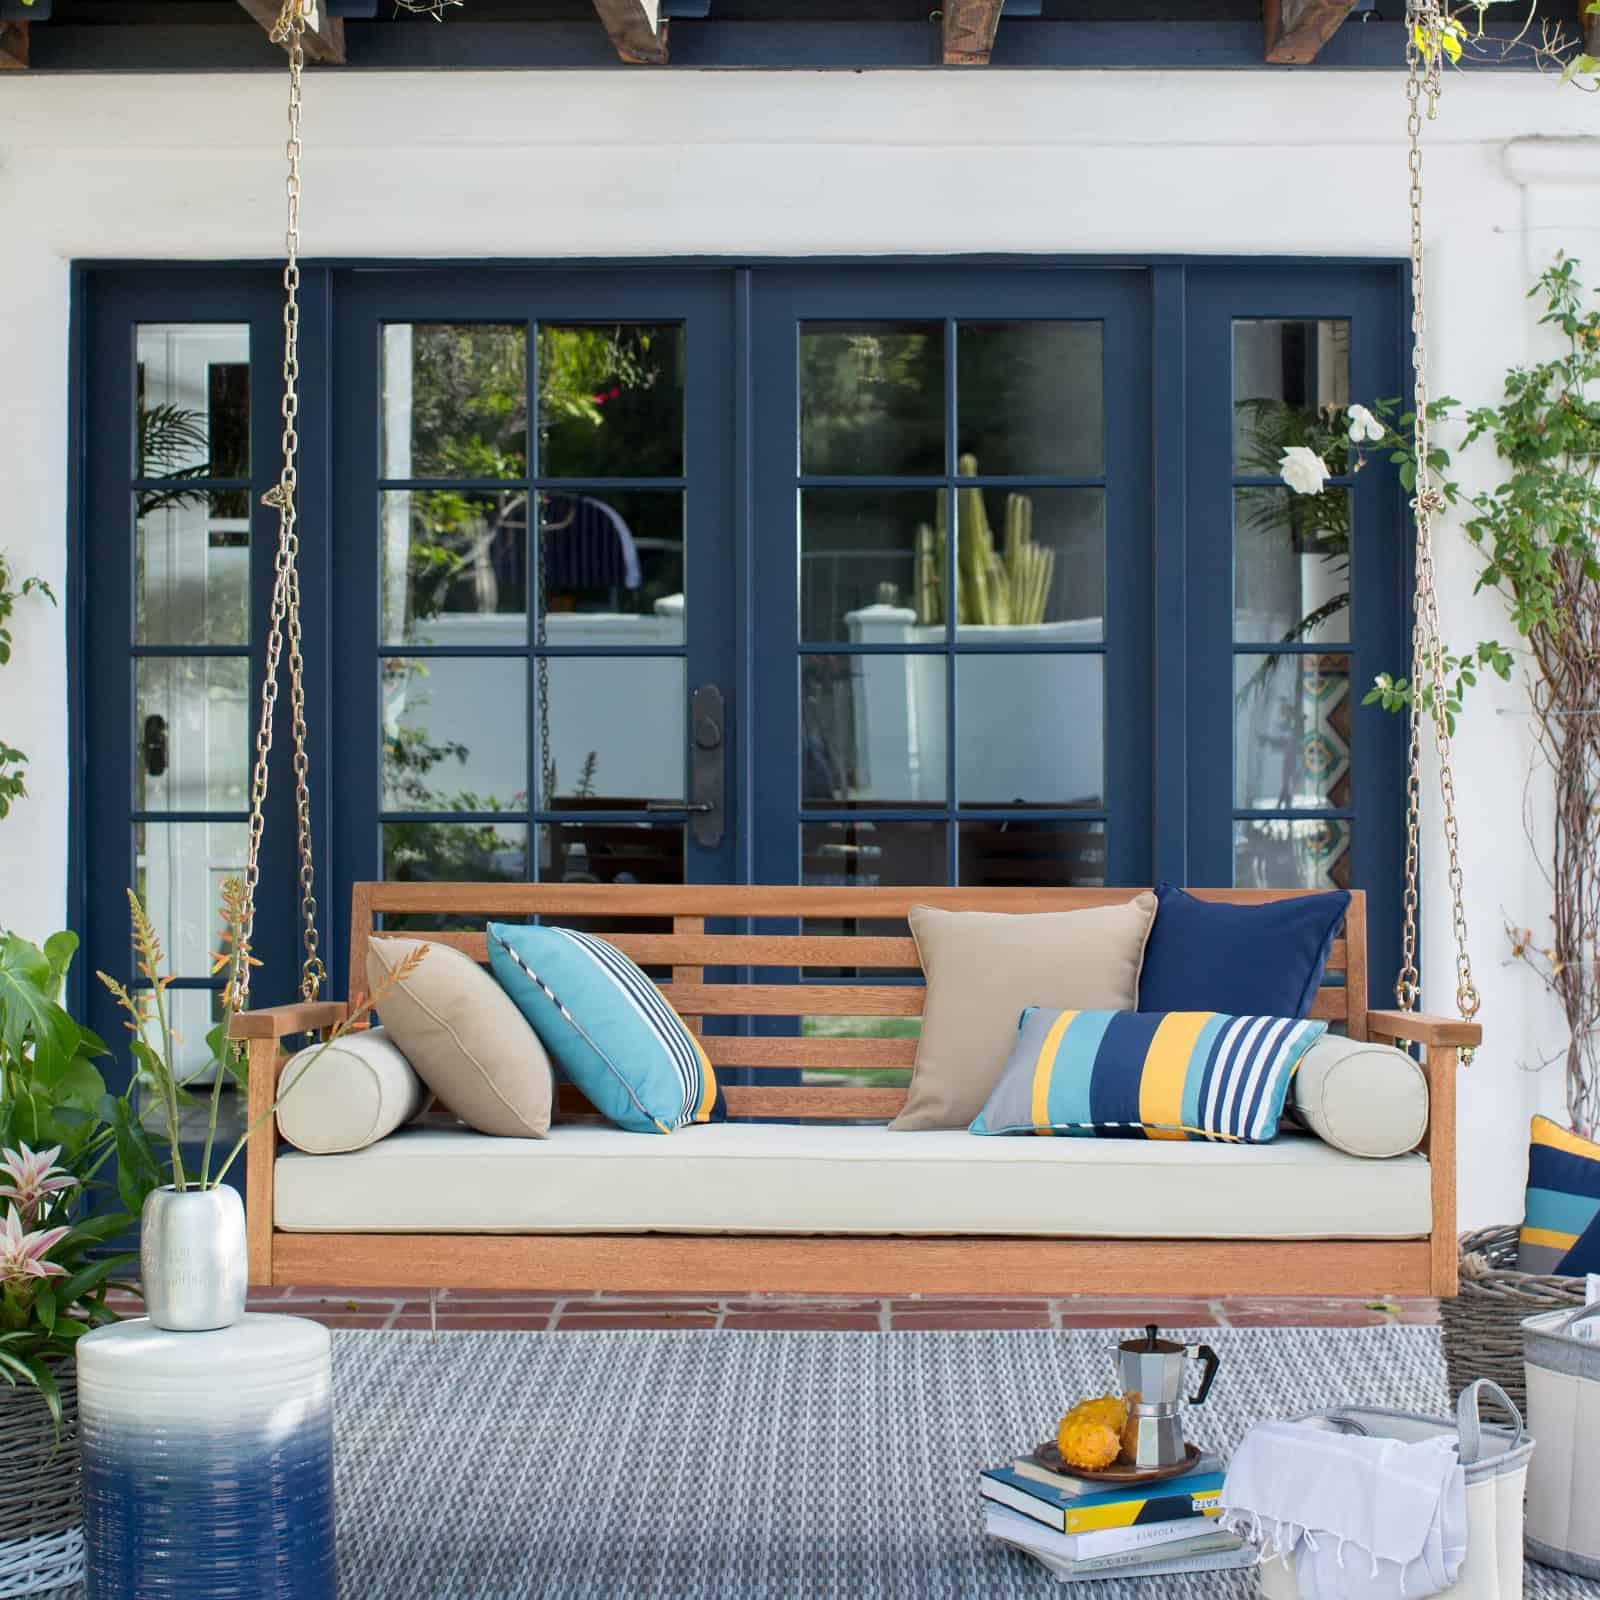 beldam living porch swing, navy blue french doors, natural wood porch swing